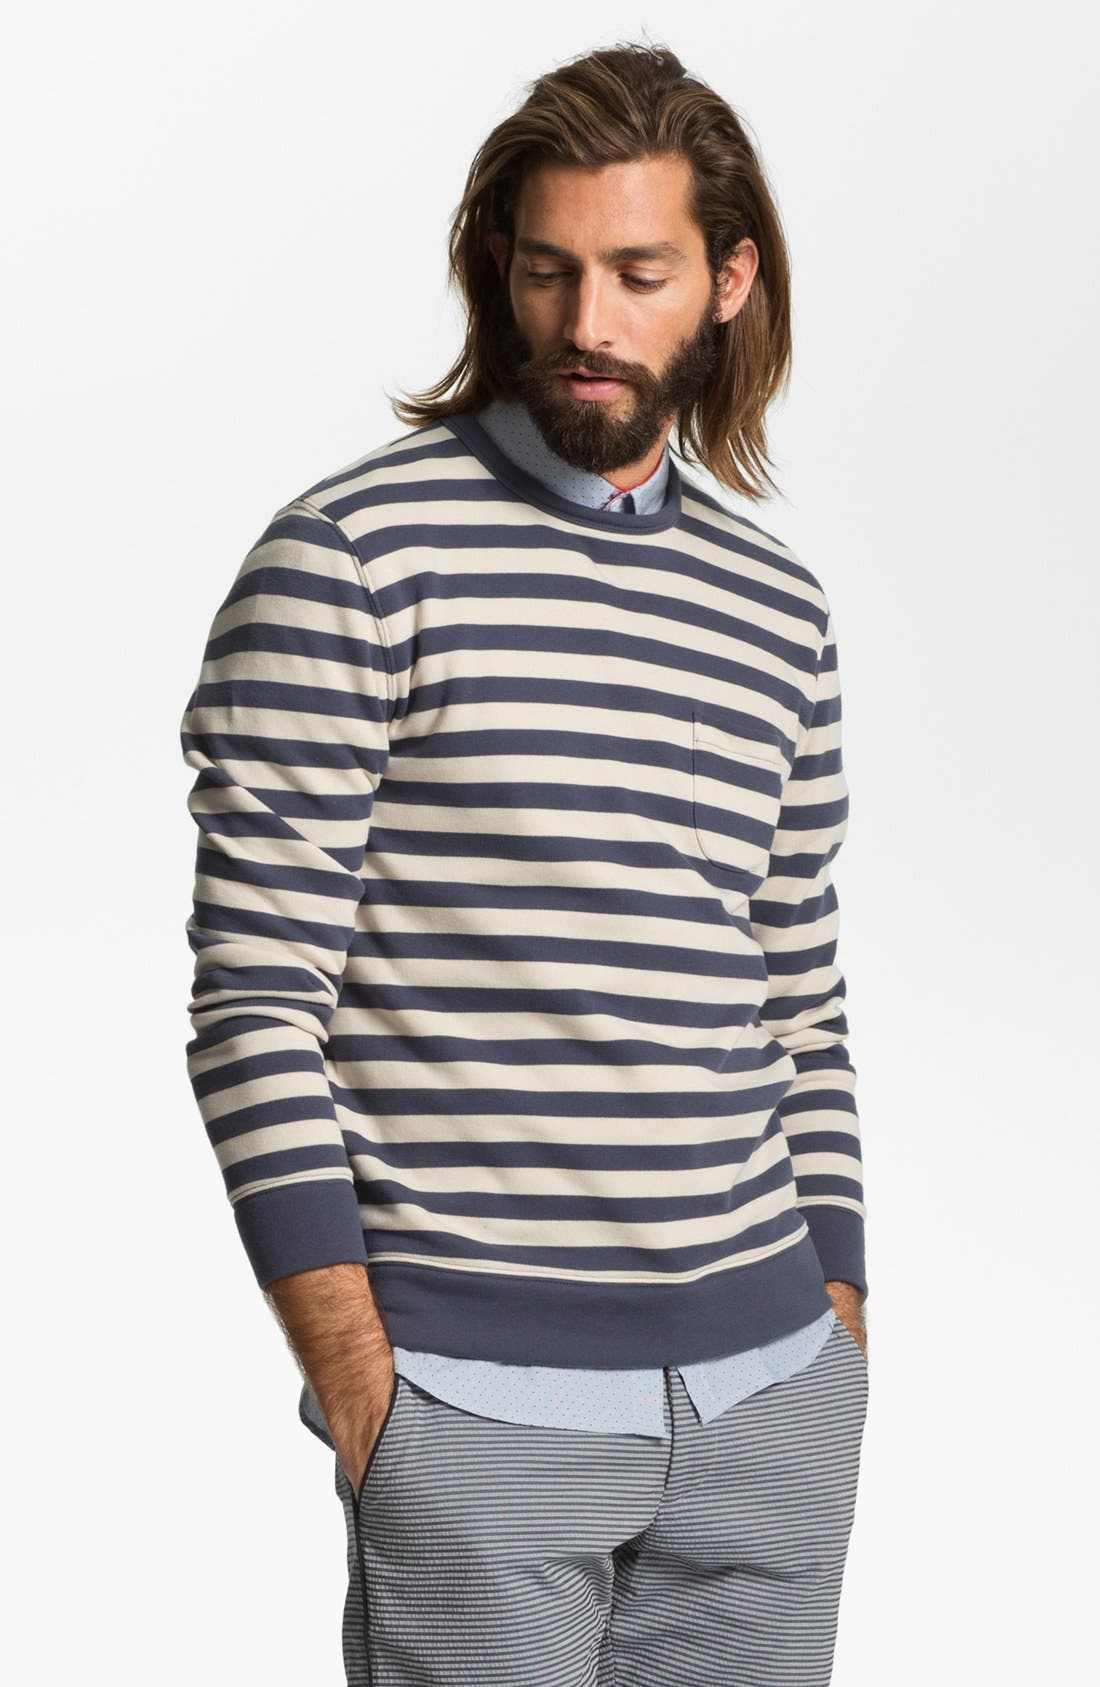 Alternate Image 1 Selected - Obey 'Dano' Stripe Crewneck Sweatshirt